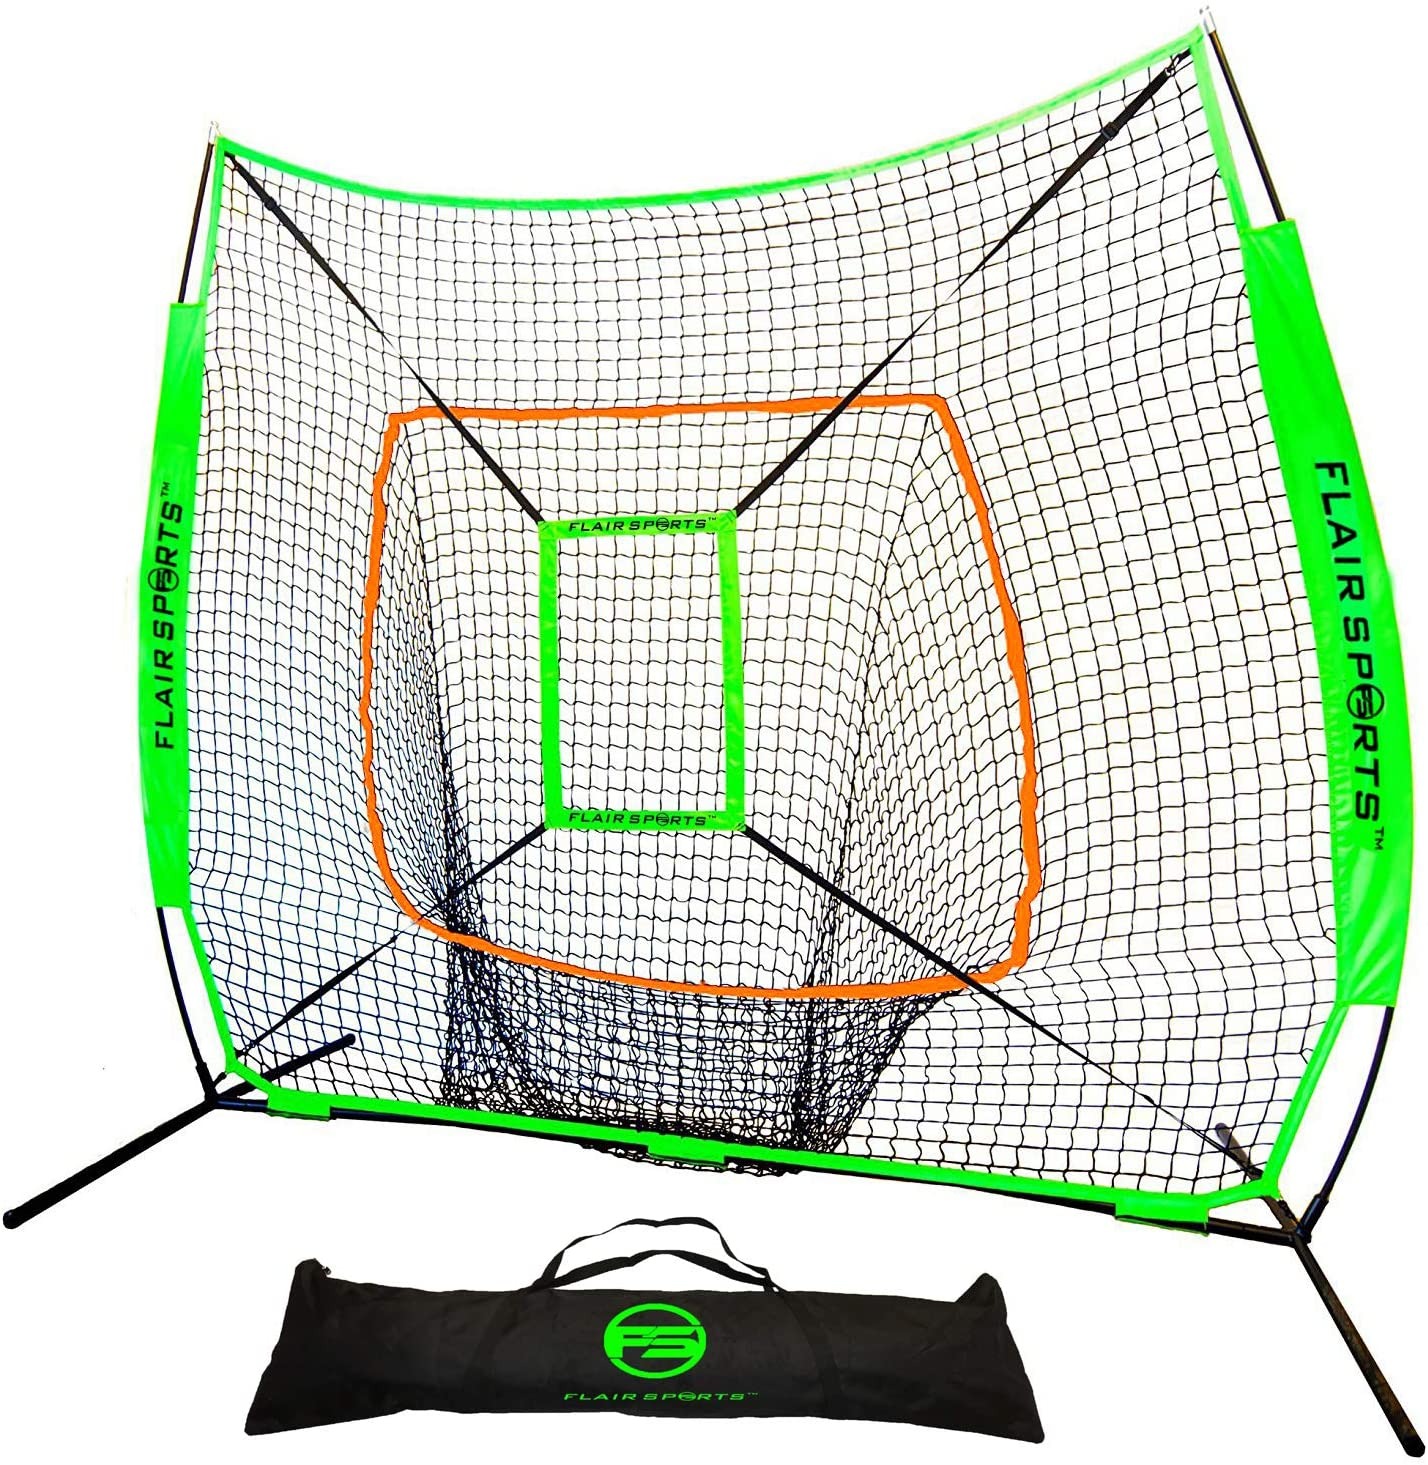 Flair Sports Baseball Softball Net for Hitting Pitching Heavy Duty 7×7 Pro Series Indoor Outdoor Training Net Bow Frame BONUS Strike Zone Included